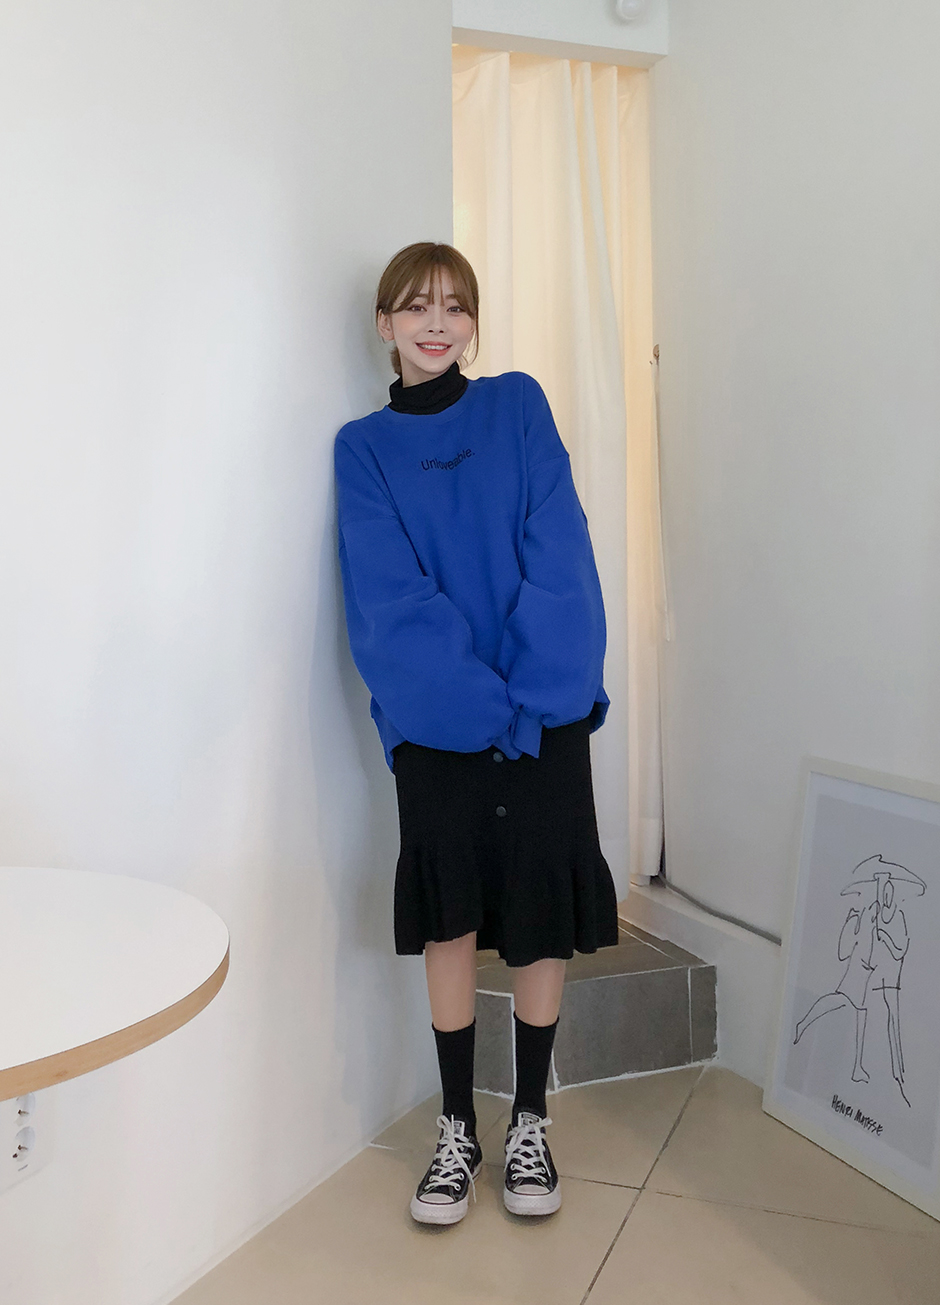 //cdn.nhanh.vn/cdn/store/29770/psCT/20190110/11071444/Unbalanced_Unique_Knit_Skirt_(2019_31_10).jpg